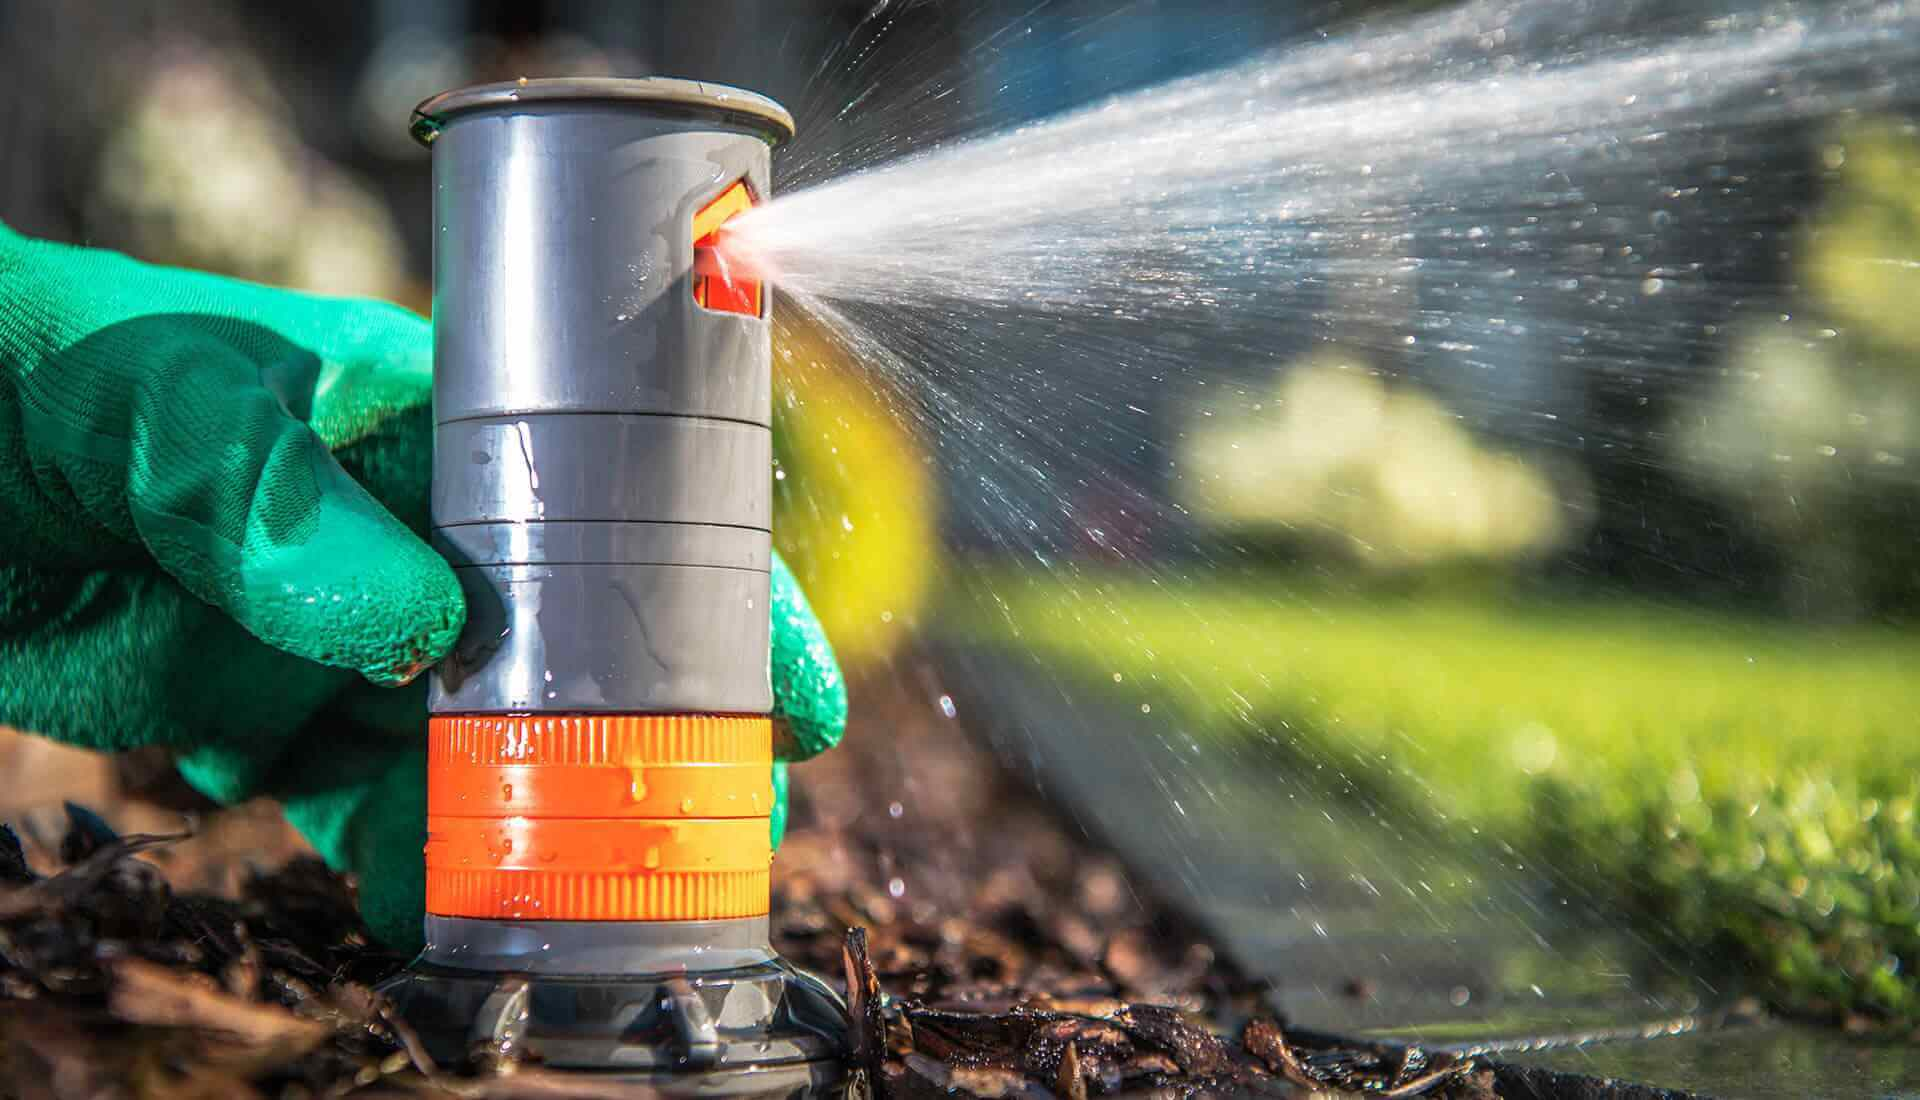 https://www.vitalgardens.com/wp-content/uploads/2020/04/best-Irrigation-Systems-in-portugal.jpg